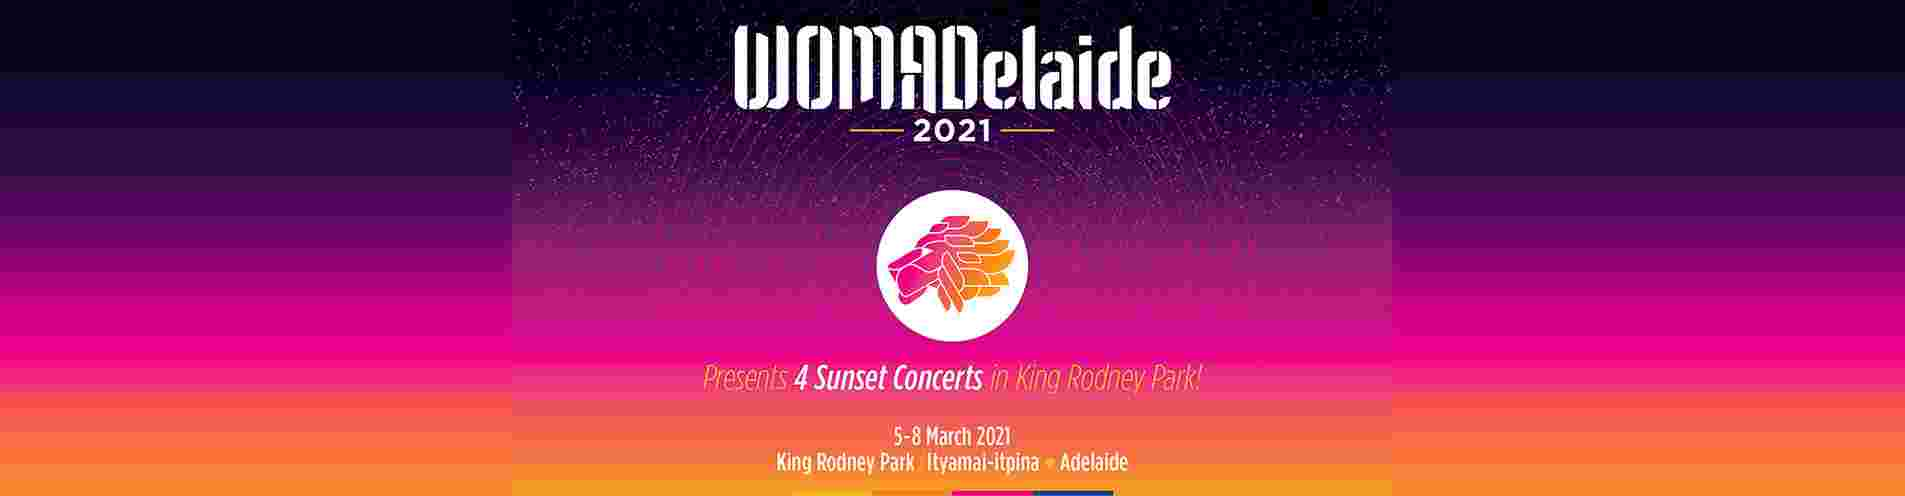 WOMADelaide March Fri 5 March to Mon 8 March 2021 header image